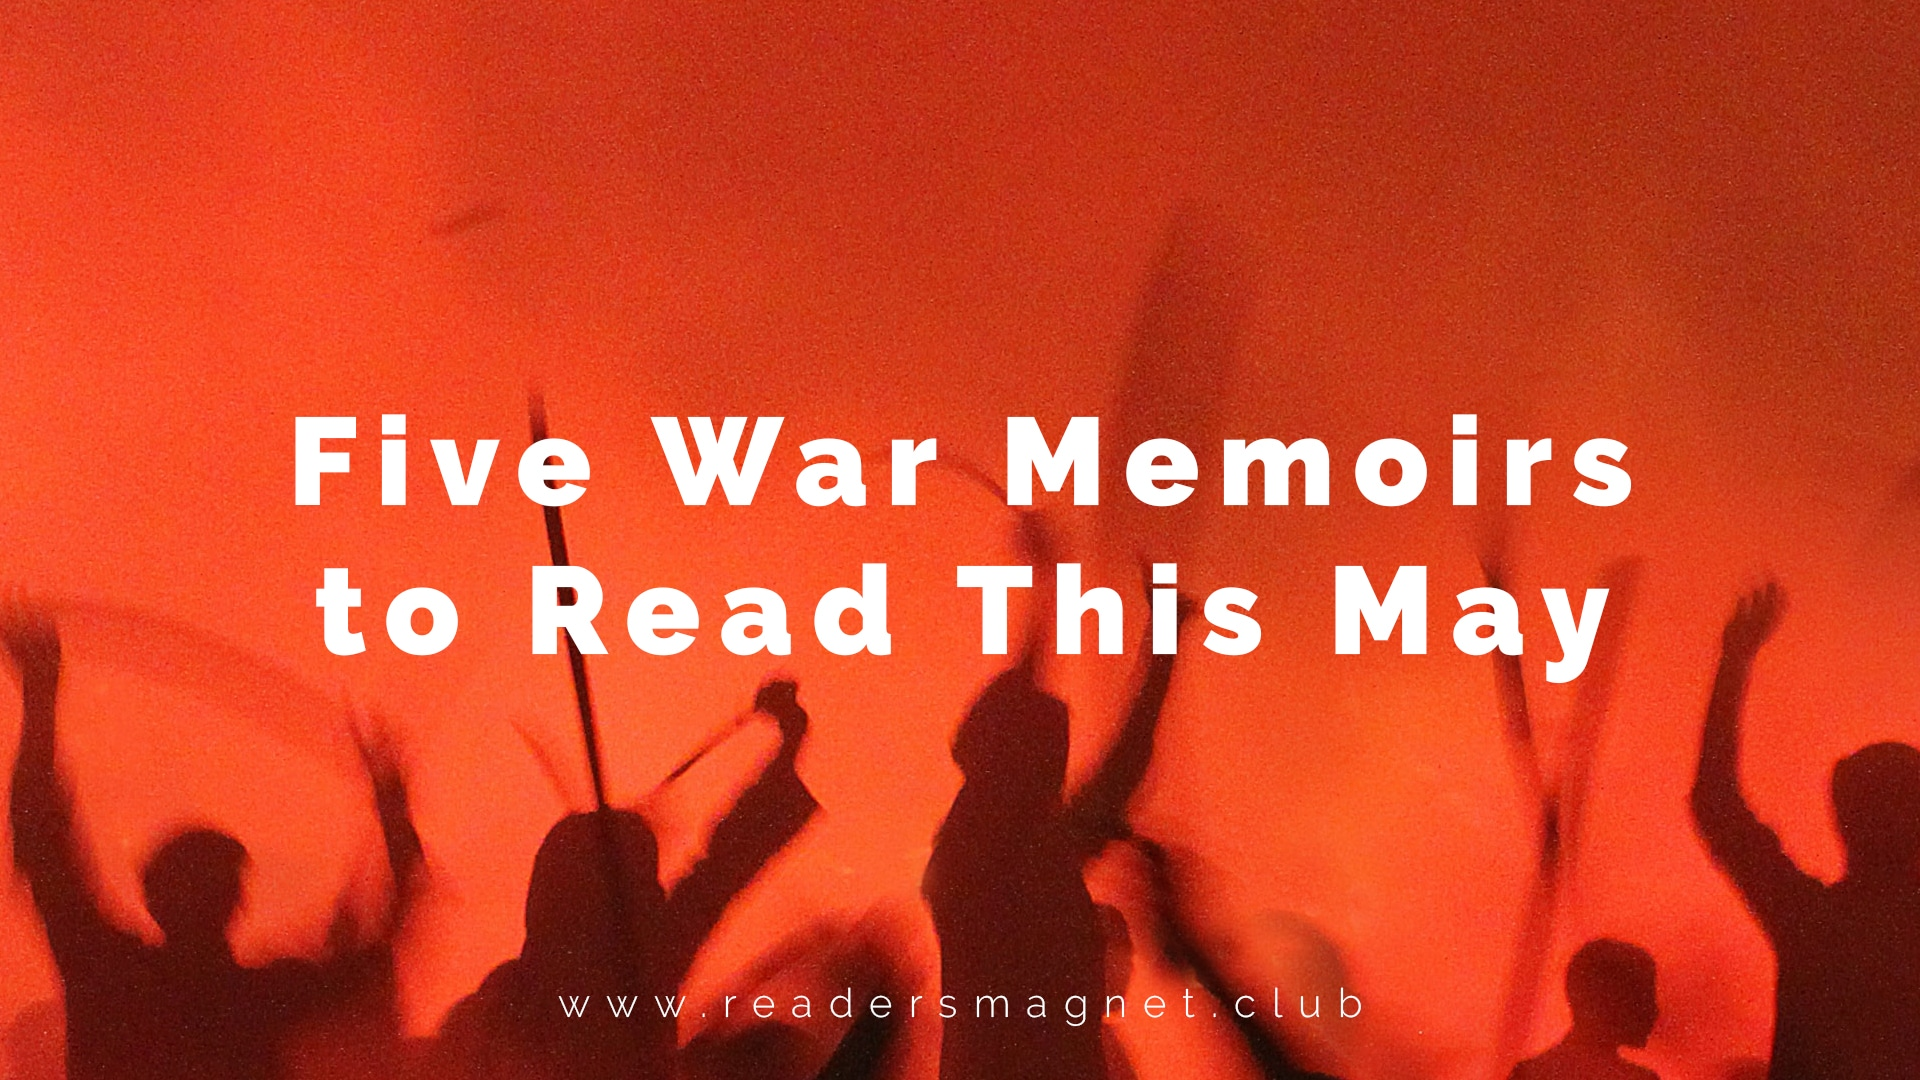 Five War Memoirs to Read This May banner